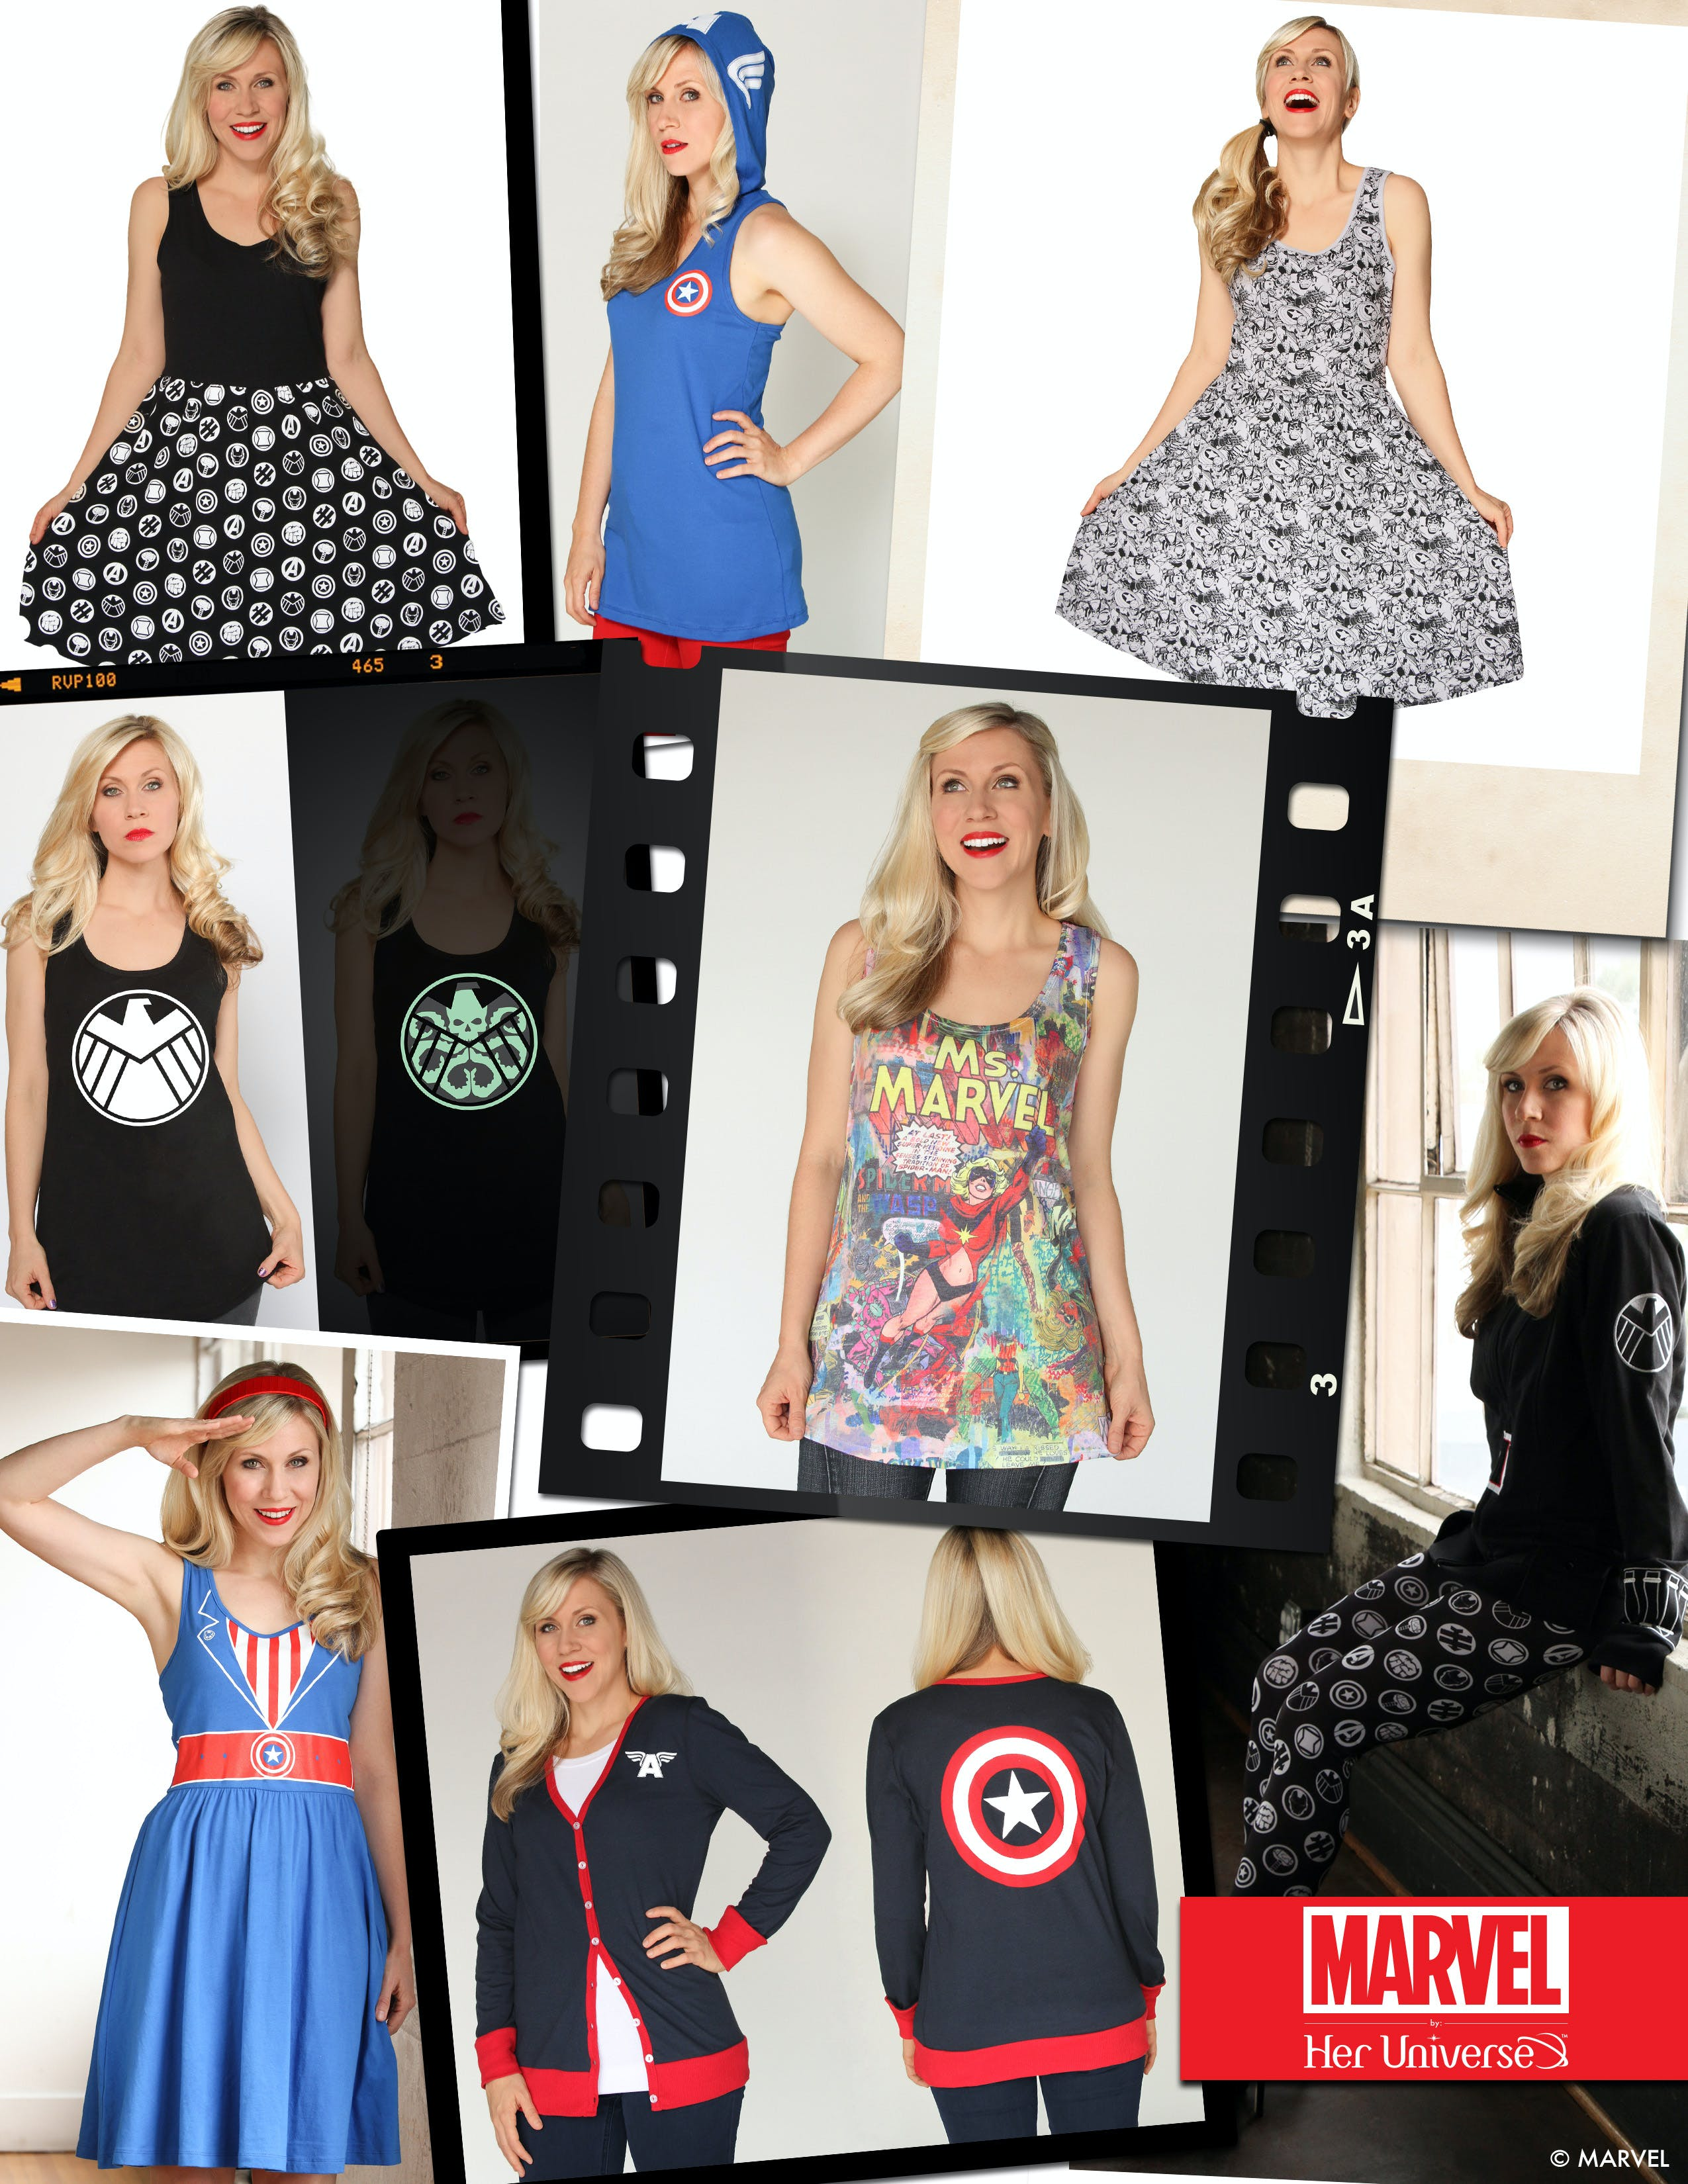 Her Universe new Marvel clothing line.